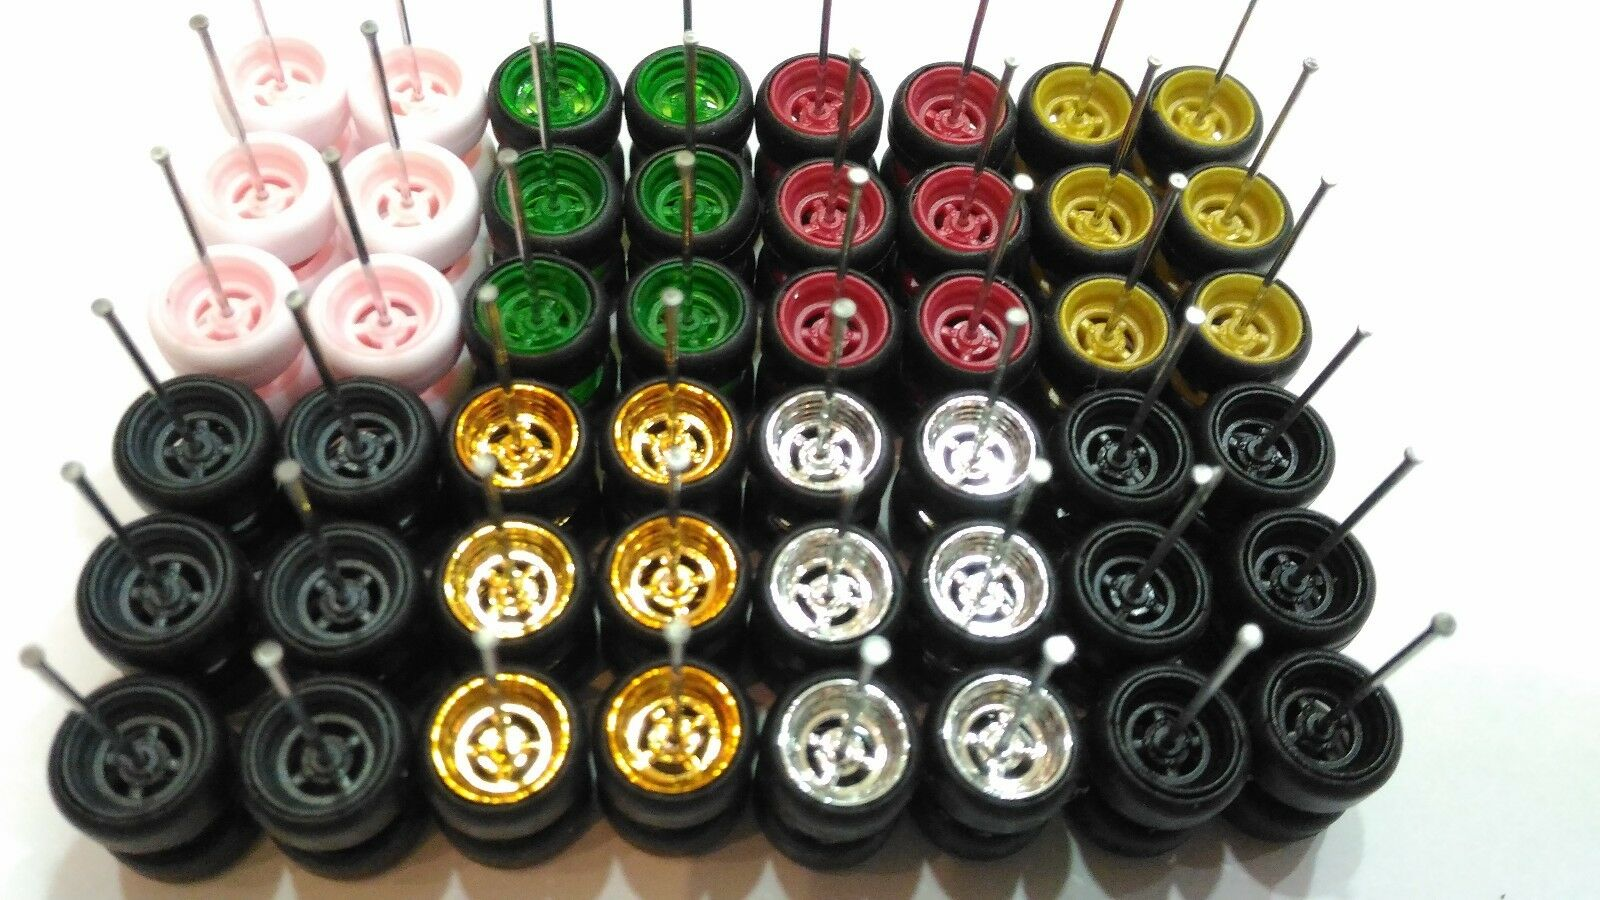 Hot Wheels 4 Spoke Donuts Long Axle Rubber Tire Mix 8 Colorees 24 sets for JDM